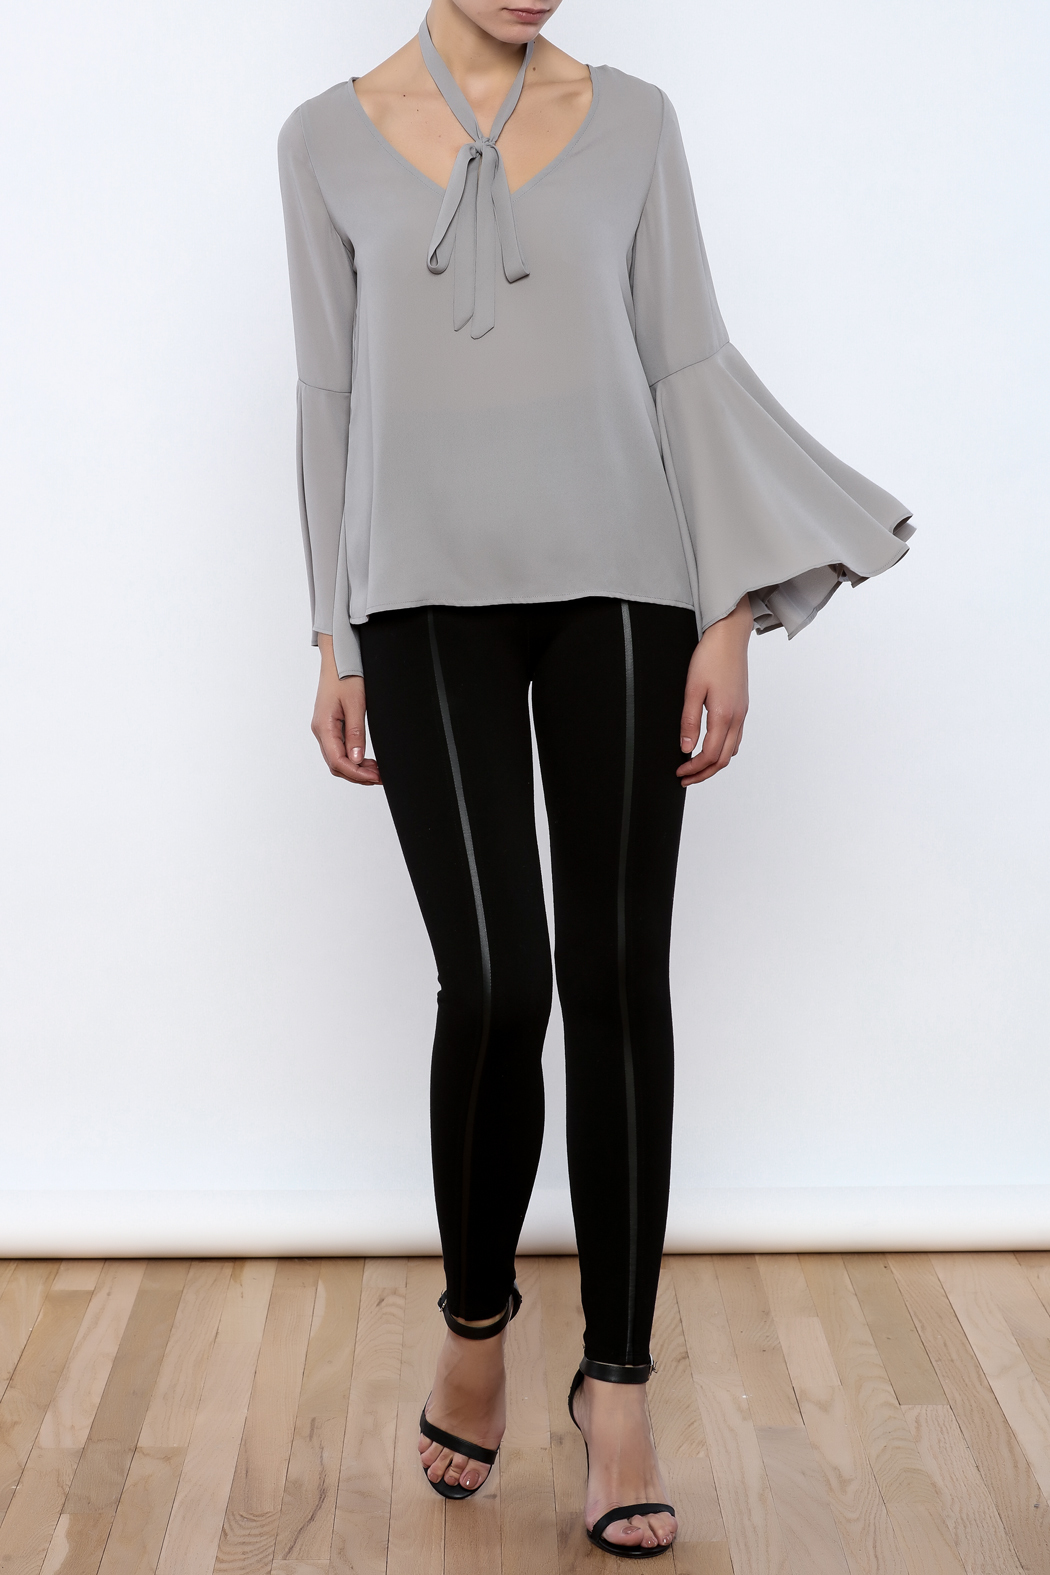 Bacio Grey Bell Sleeve Top - Front Full Image